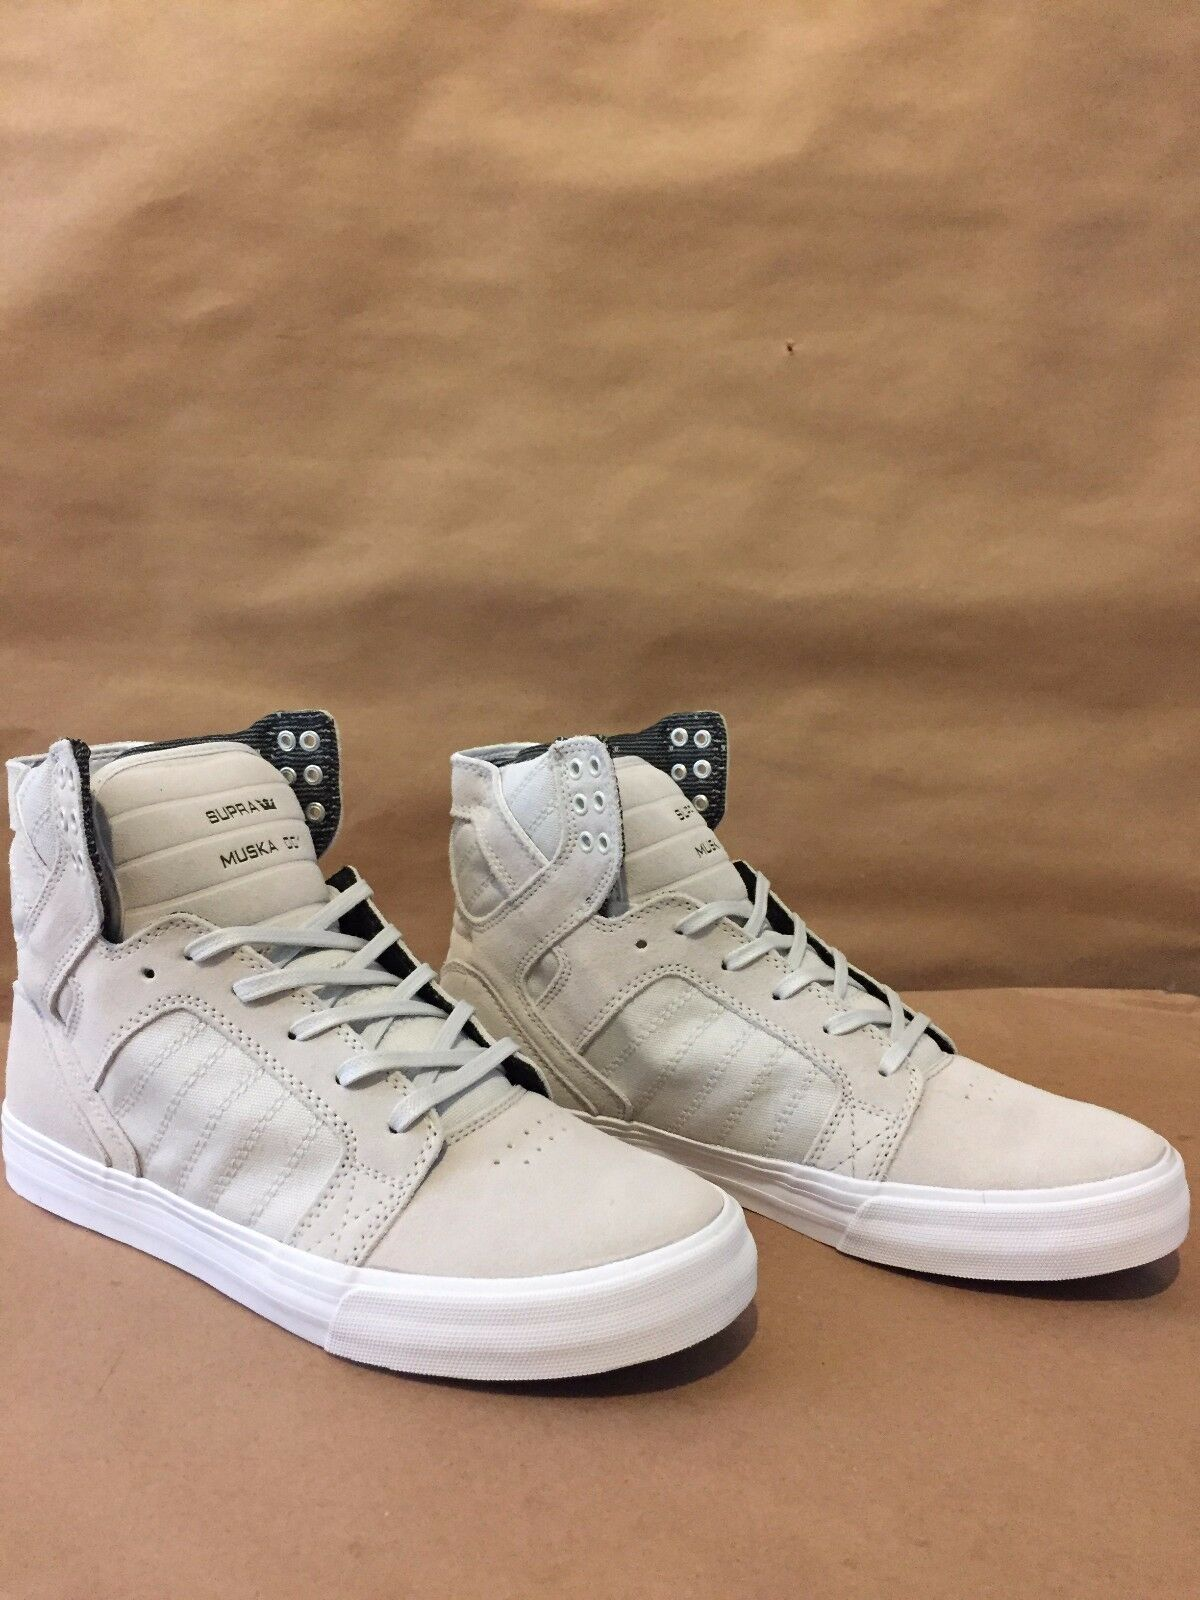 08175-042-M Supra Skytop Signature Chad Muska Light Grey/White Sizes 7-12 NIB